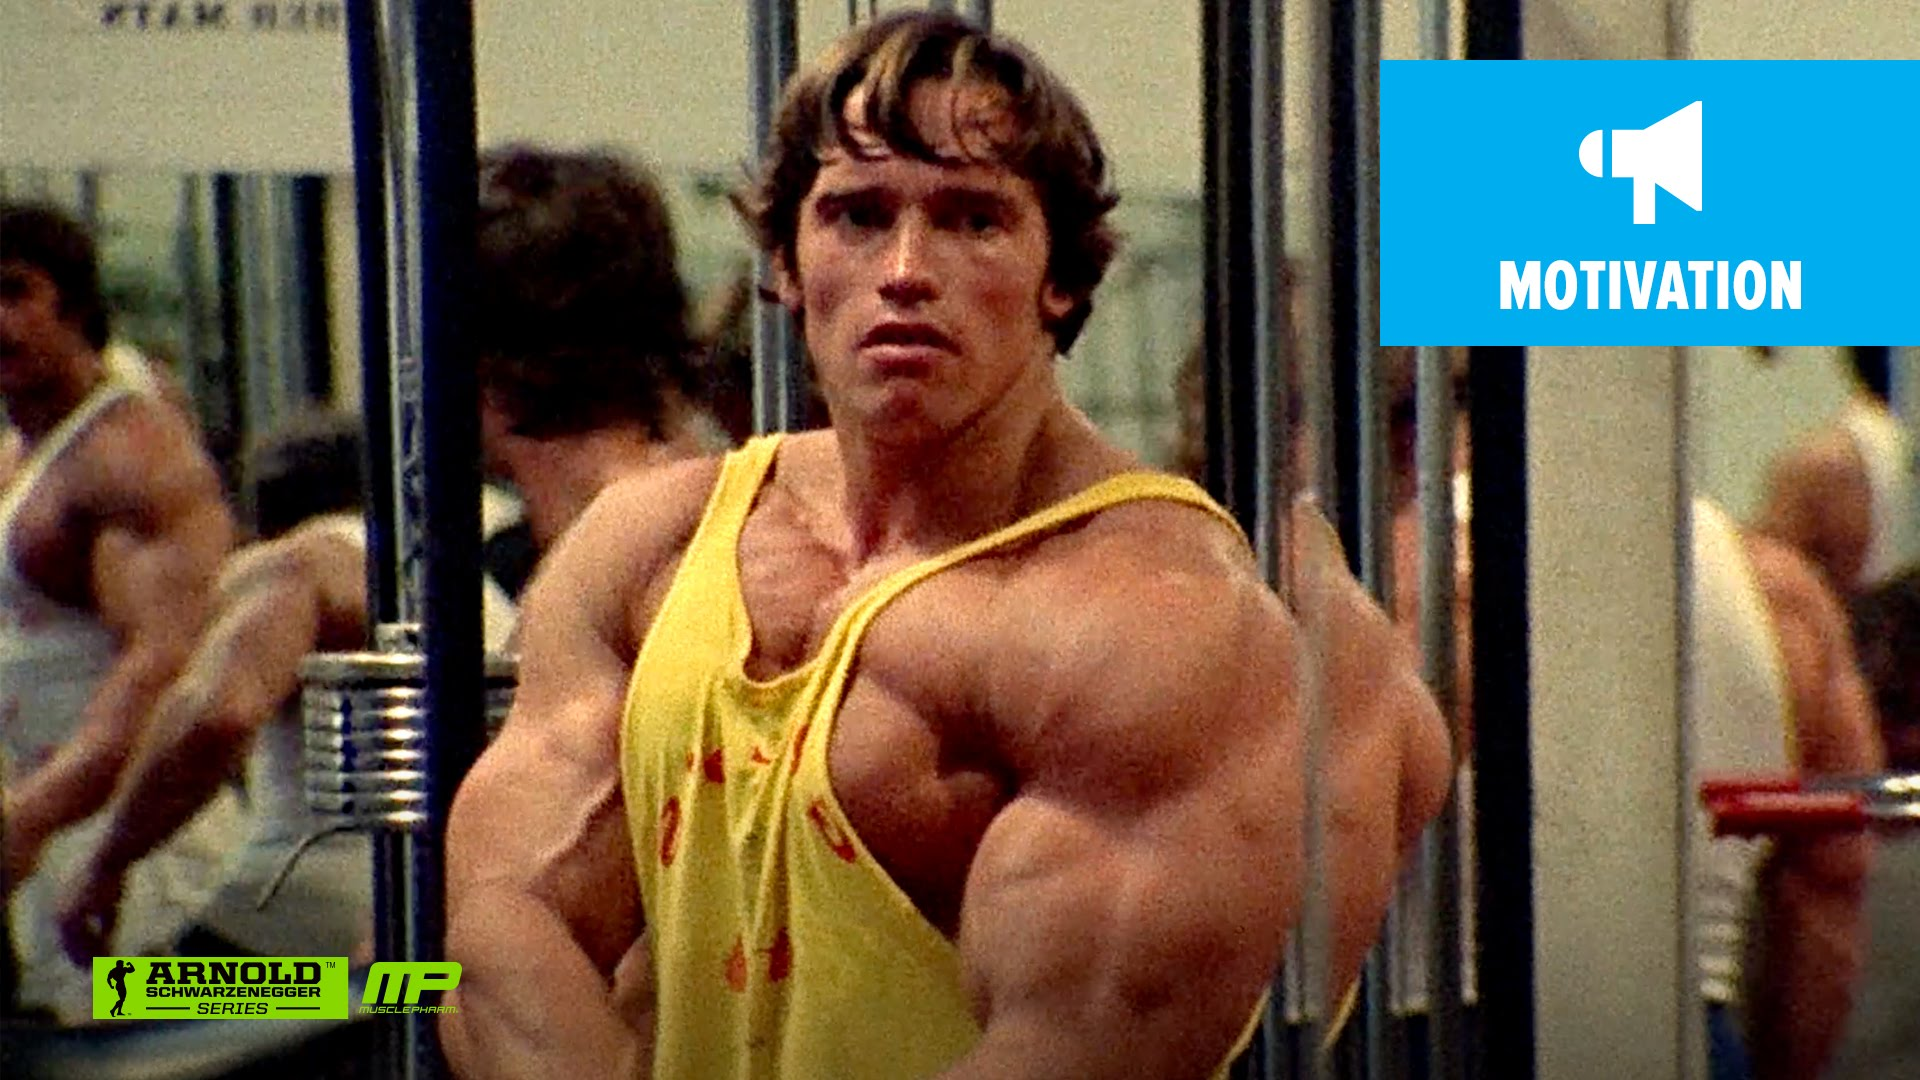 Arnold blueprint day 11 image collections blueprint arnold blueprint arnold blueprint day 11 image collections blueprint malvernweather Choice Image